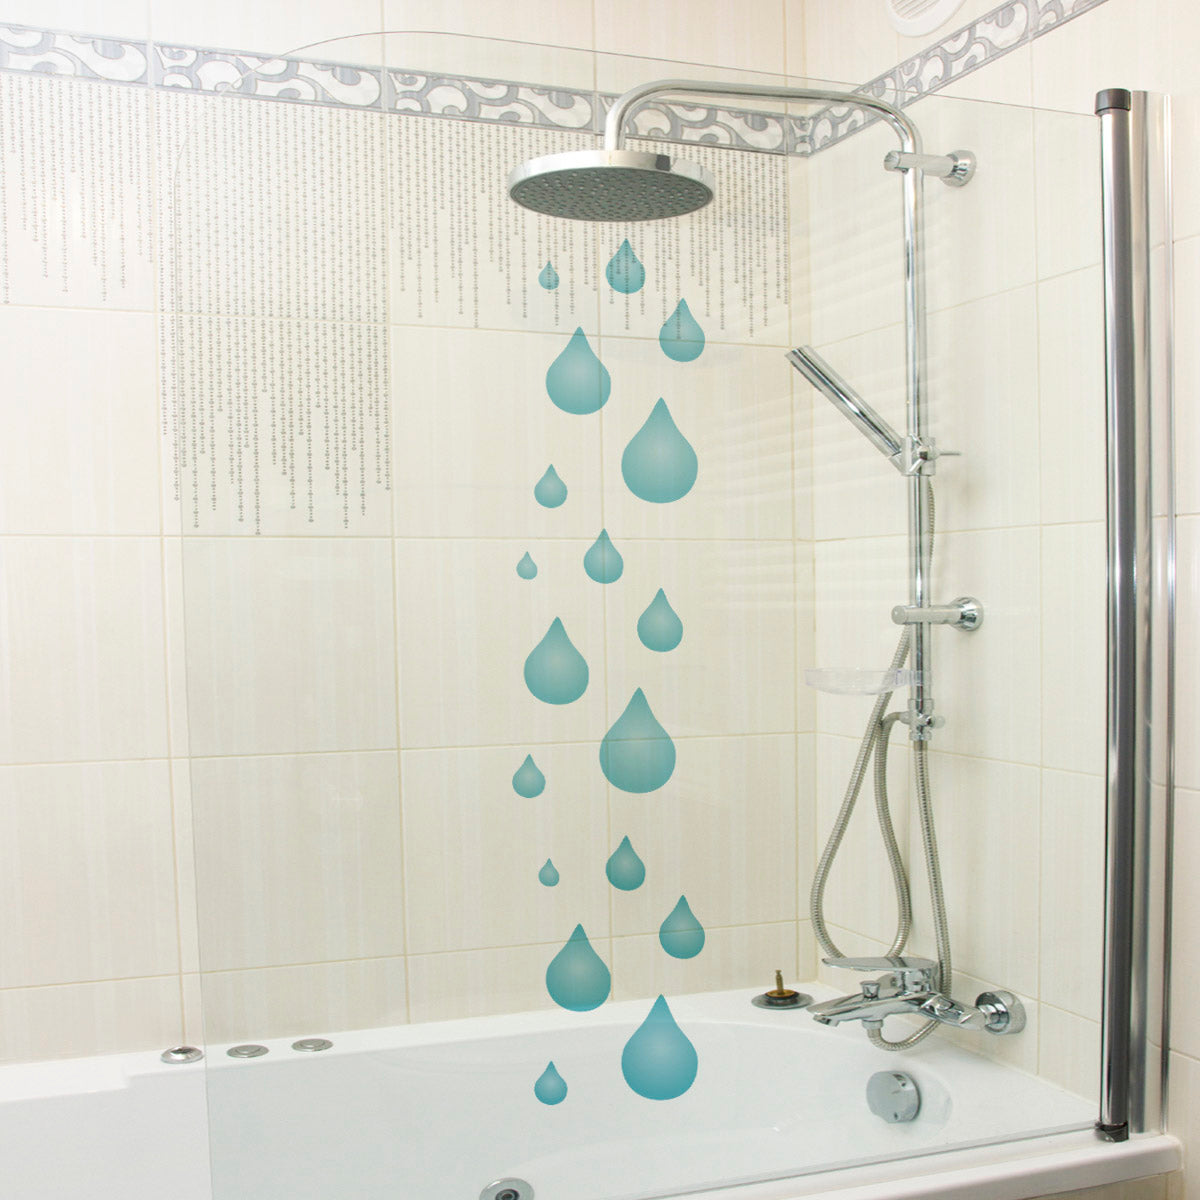 Craftstar Raindrops Stencil on Shower Screen